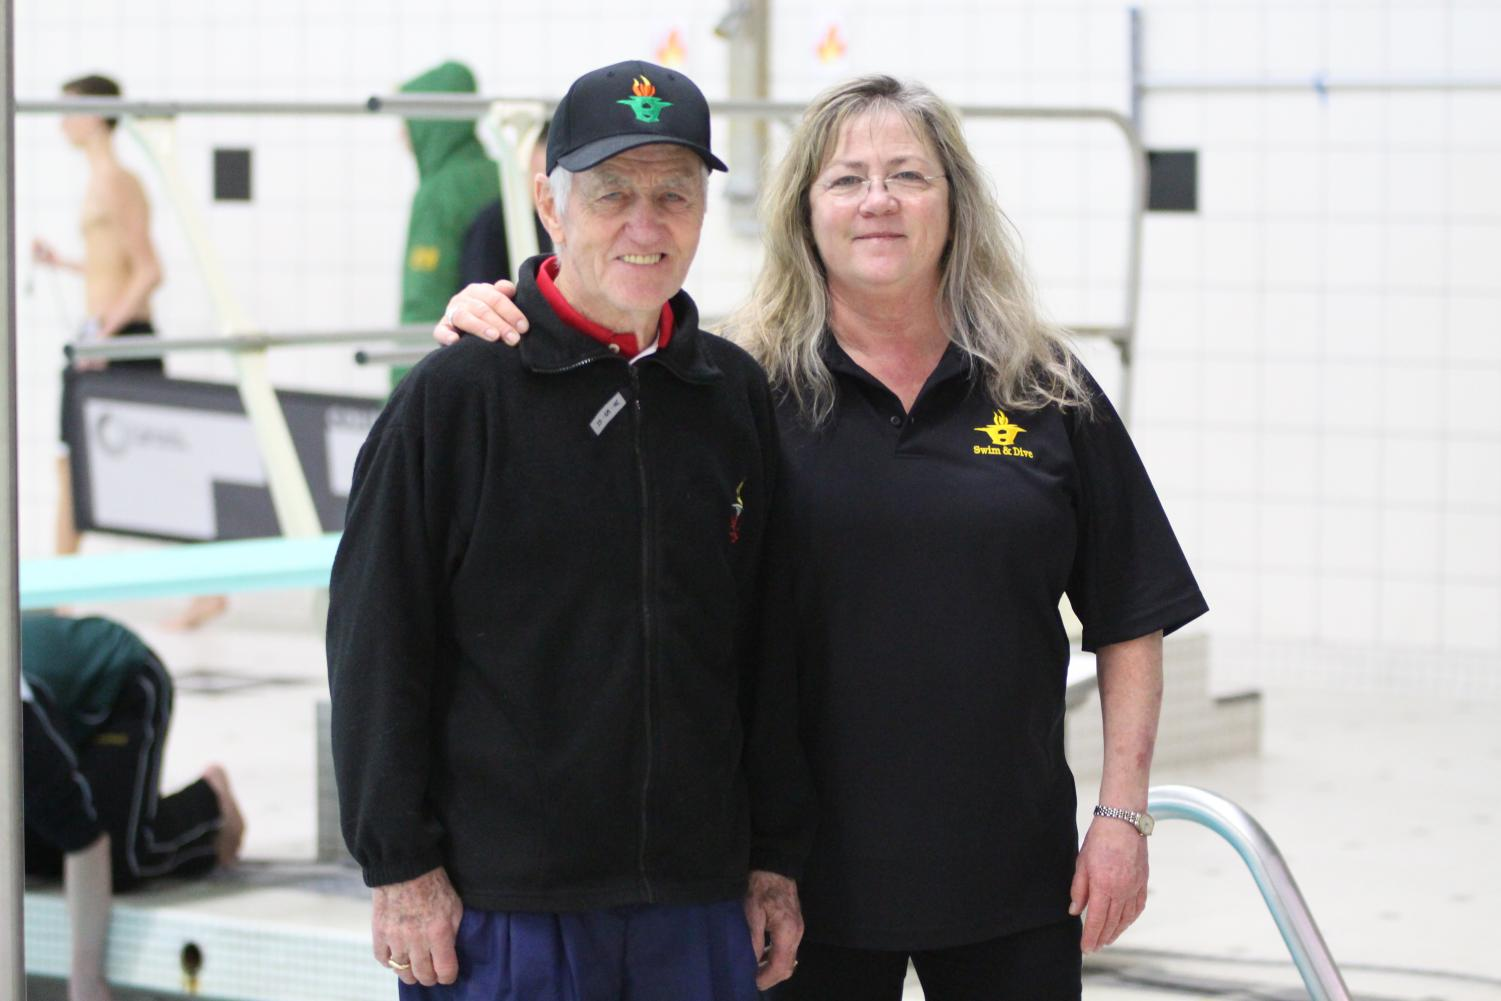 Vicki and Dick Kimball photographed in Huron High school's swimming pool.